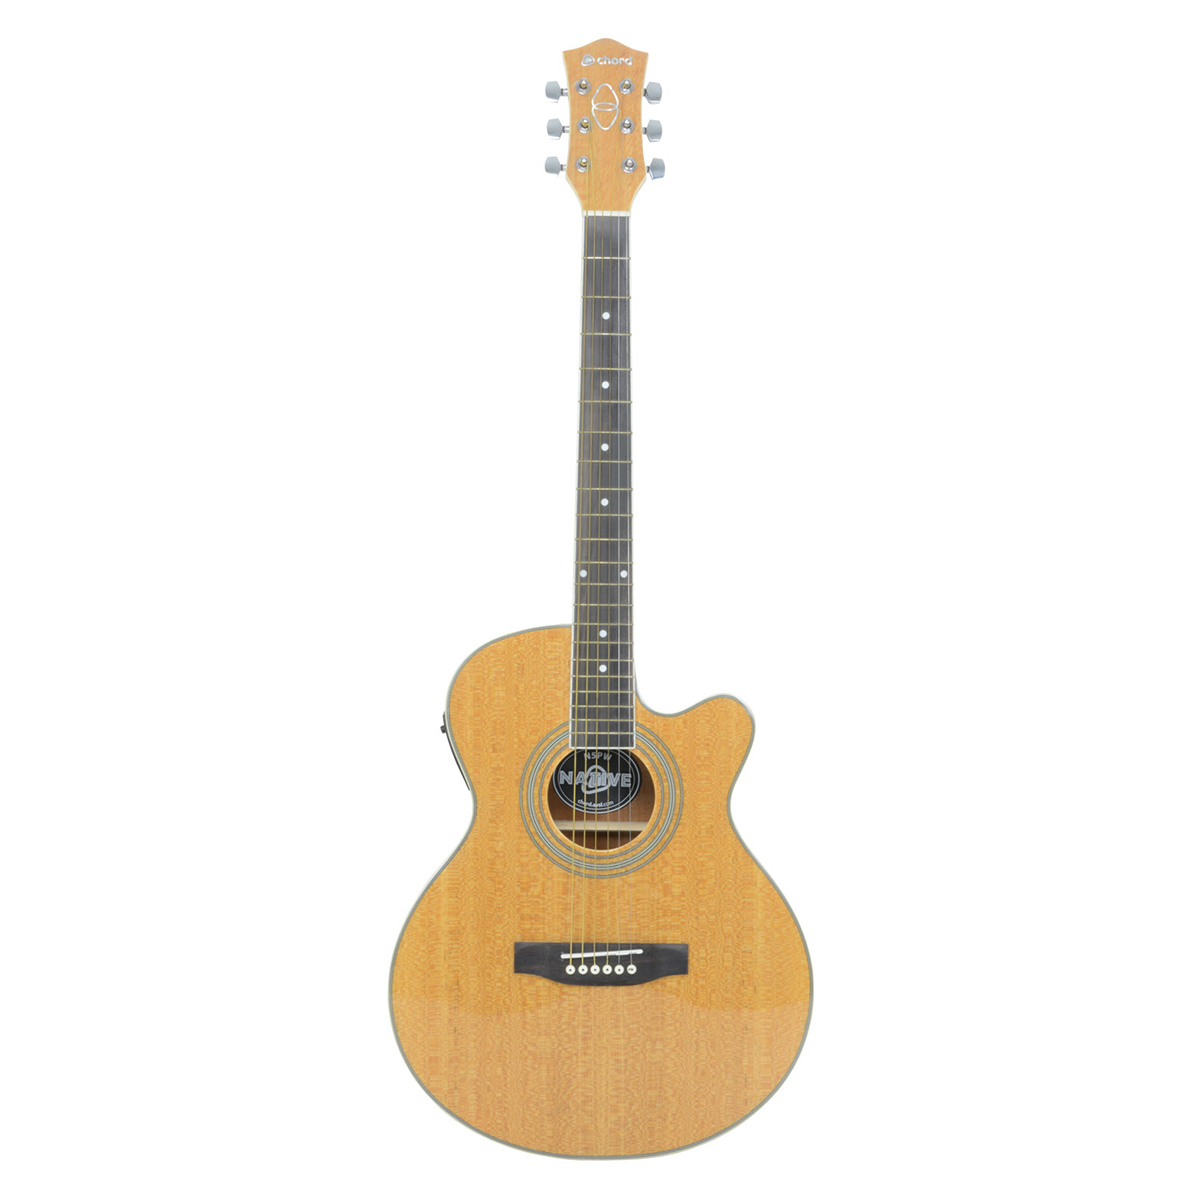 Chord N5PW Electro Acoustic Guitar - Pearwood